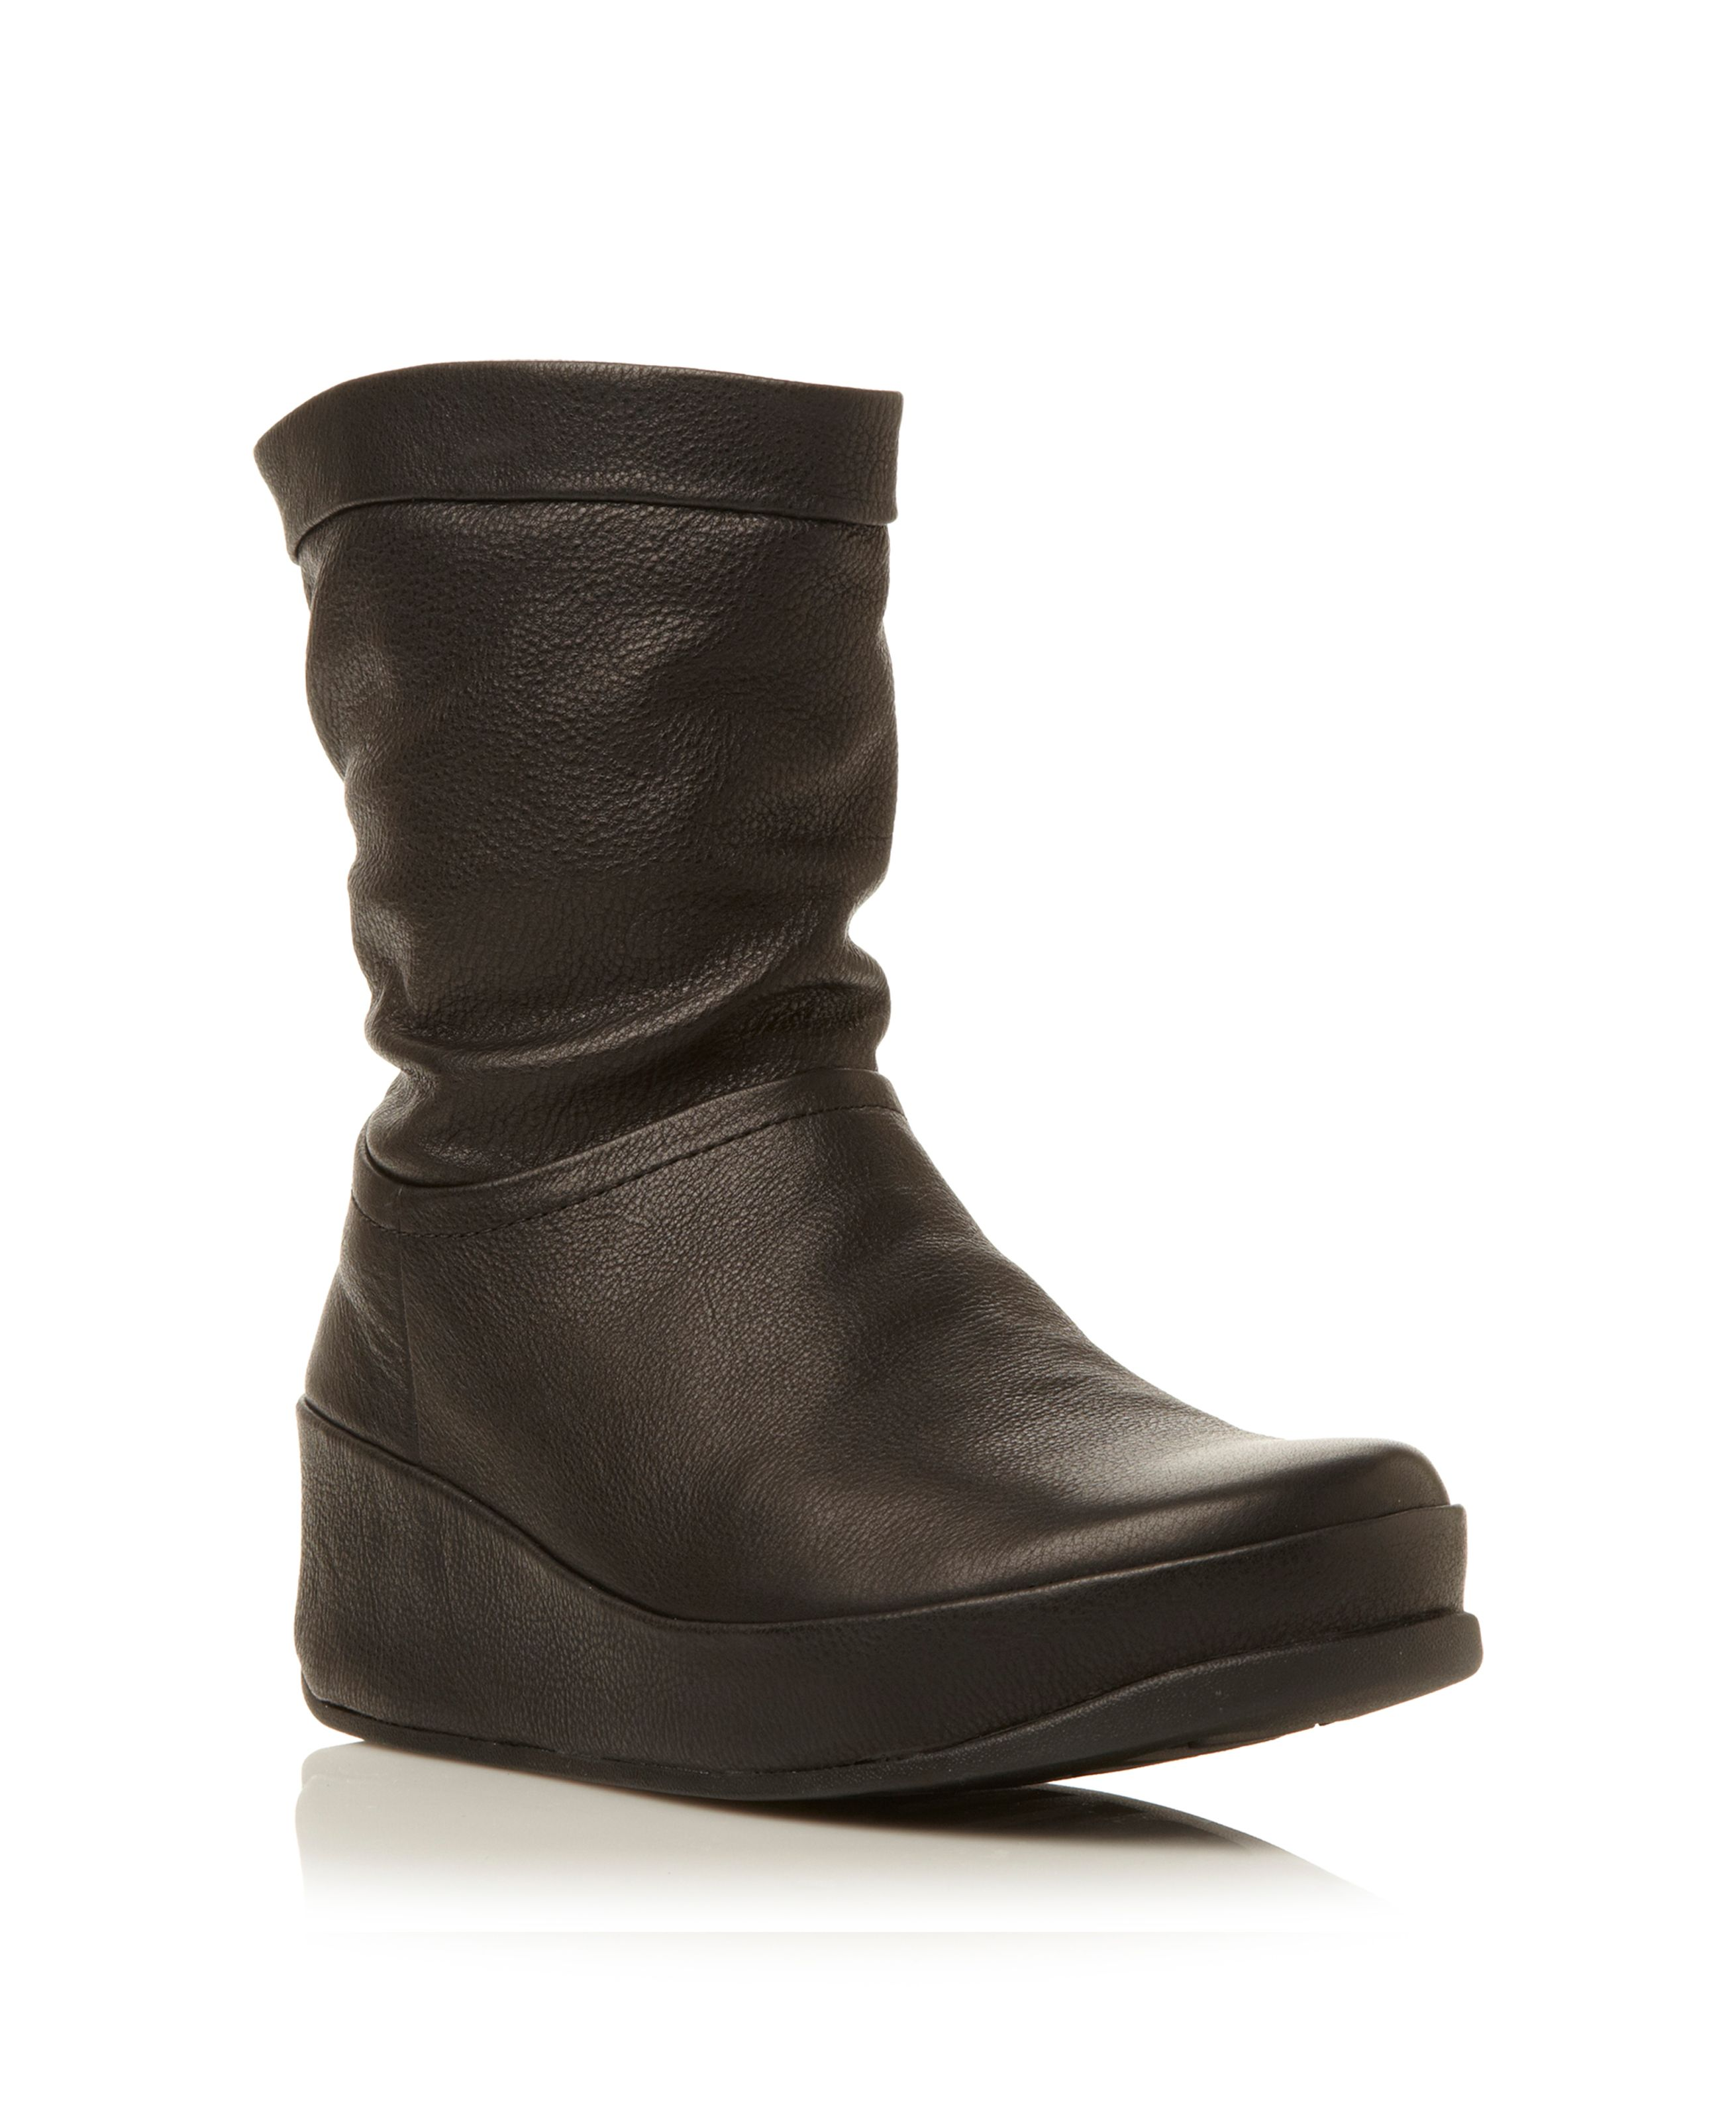 21c44d2bf Fitflop Crush Boot Leather Black